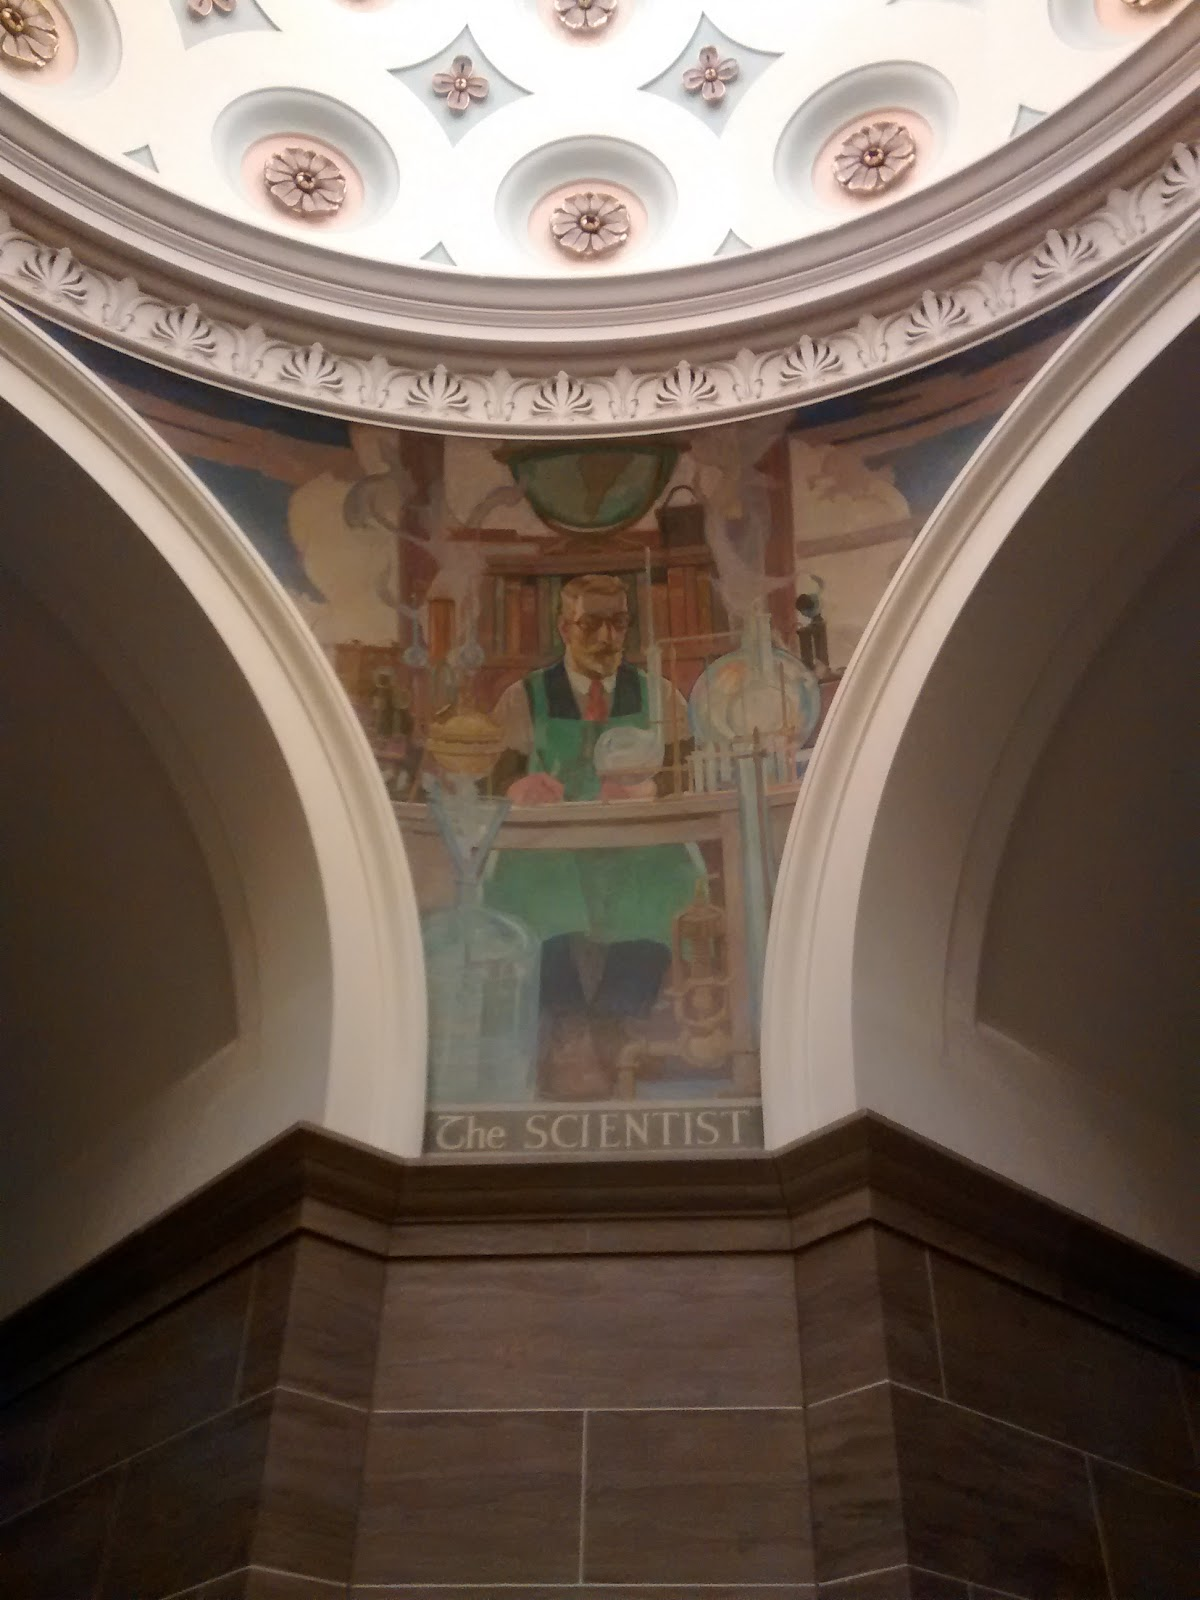 Scientist Mural at Jefferson City Capital Building